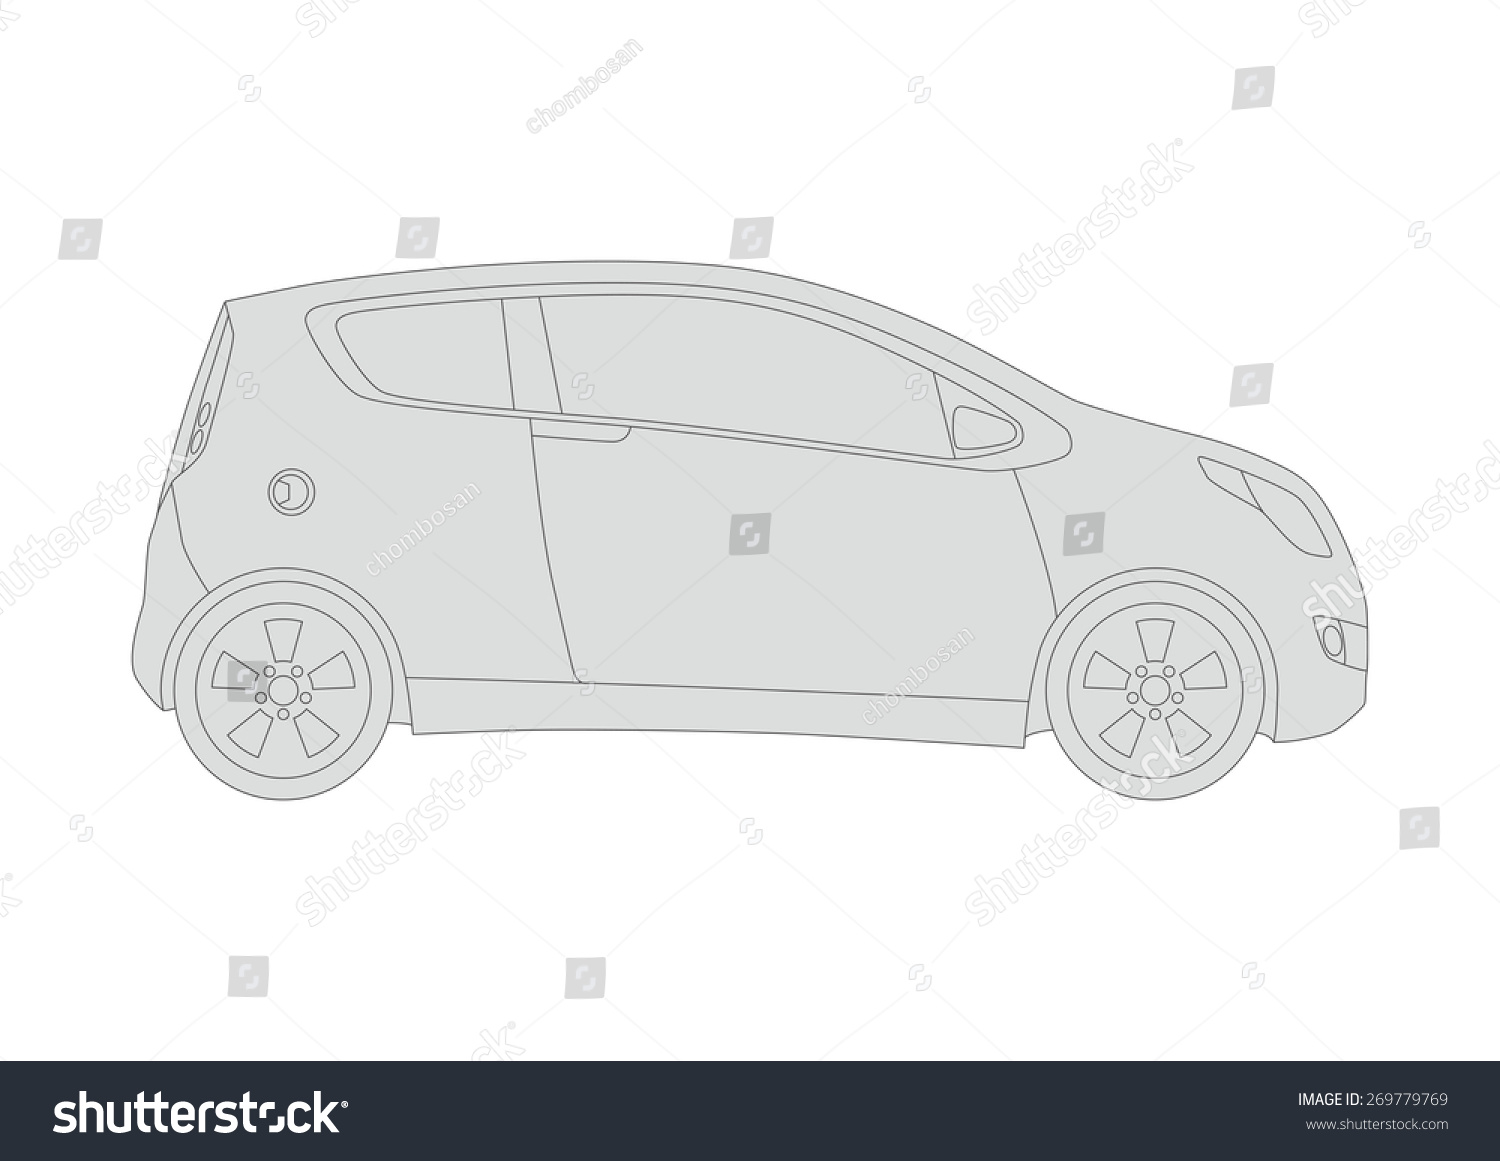 Line Drawing Of Car : Generic vehicle line drawing illustration stock vector